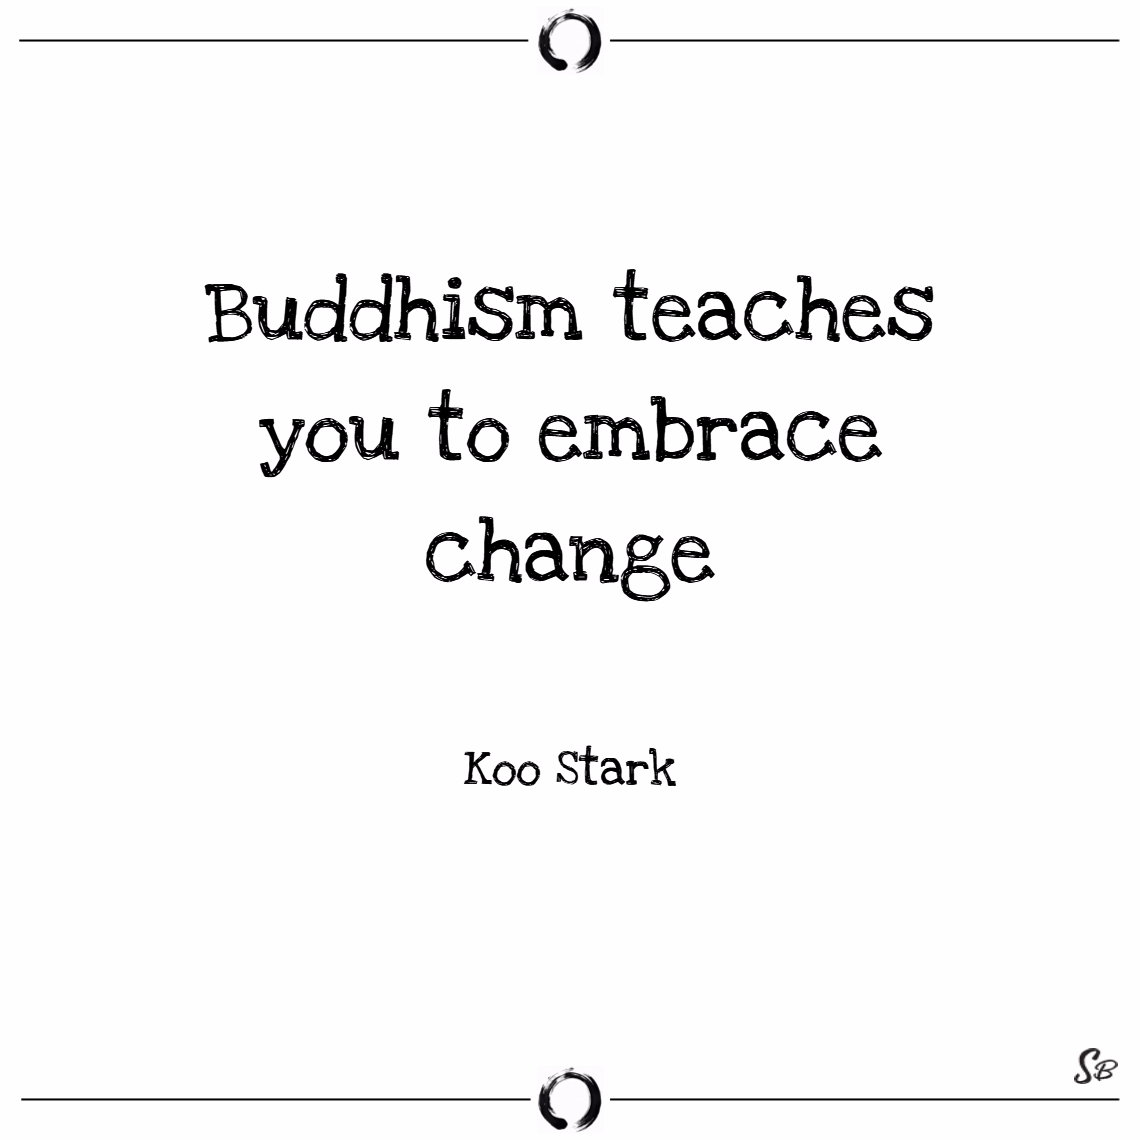 Uddhism teaches you to embrace change. – koo stark